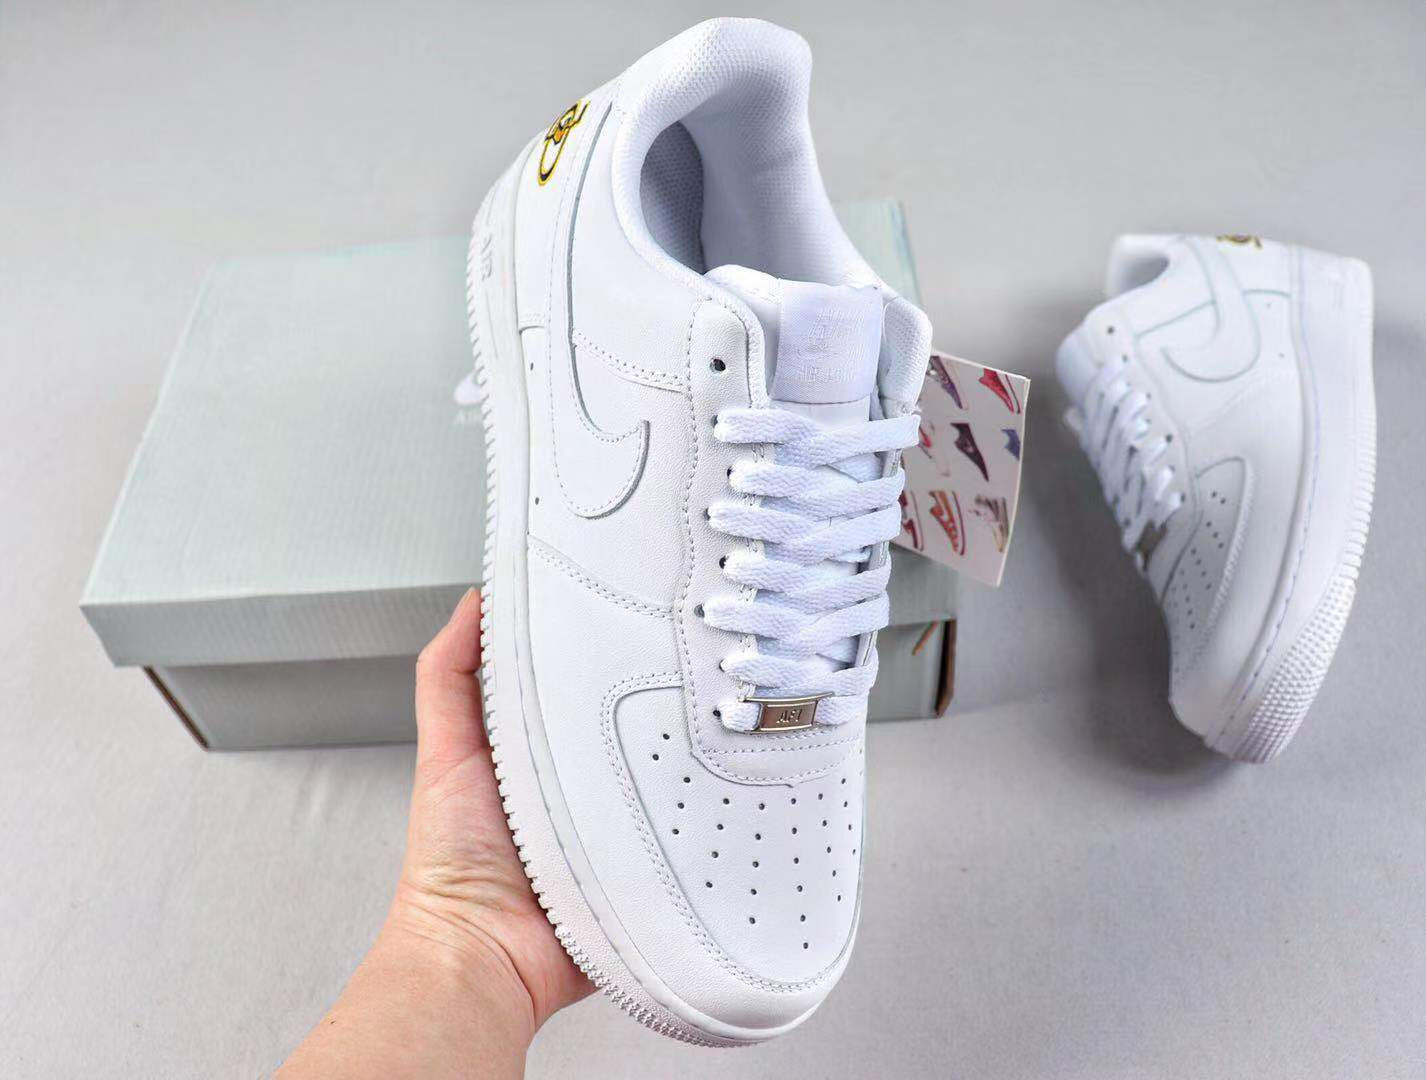 """Nike Air Force 1 Low """"Jermaine O'Neal"""" BMB122-M30 Newest Sneakers Hot Sale"""